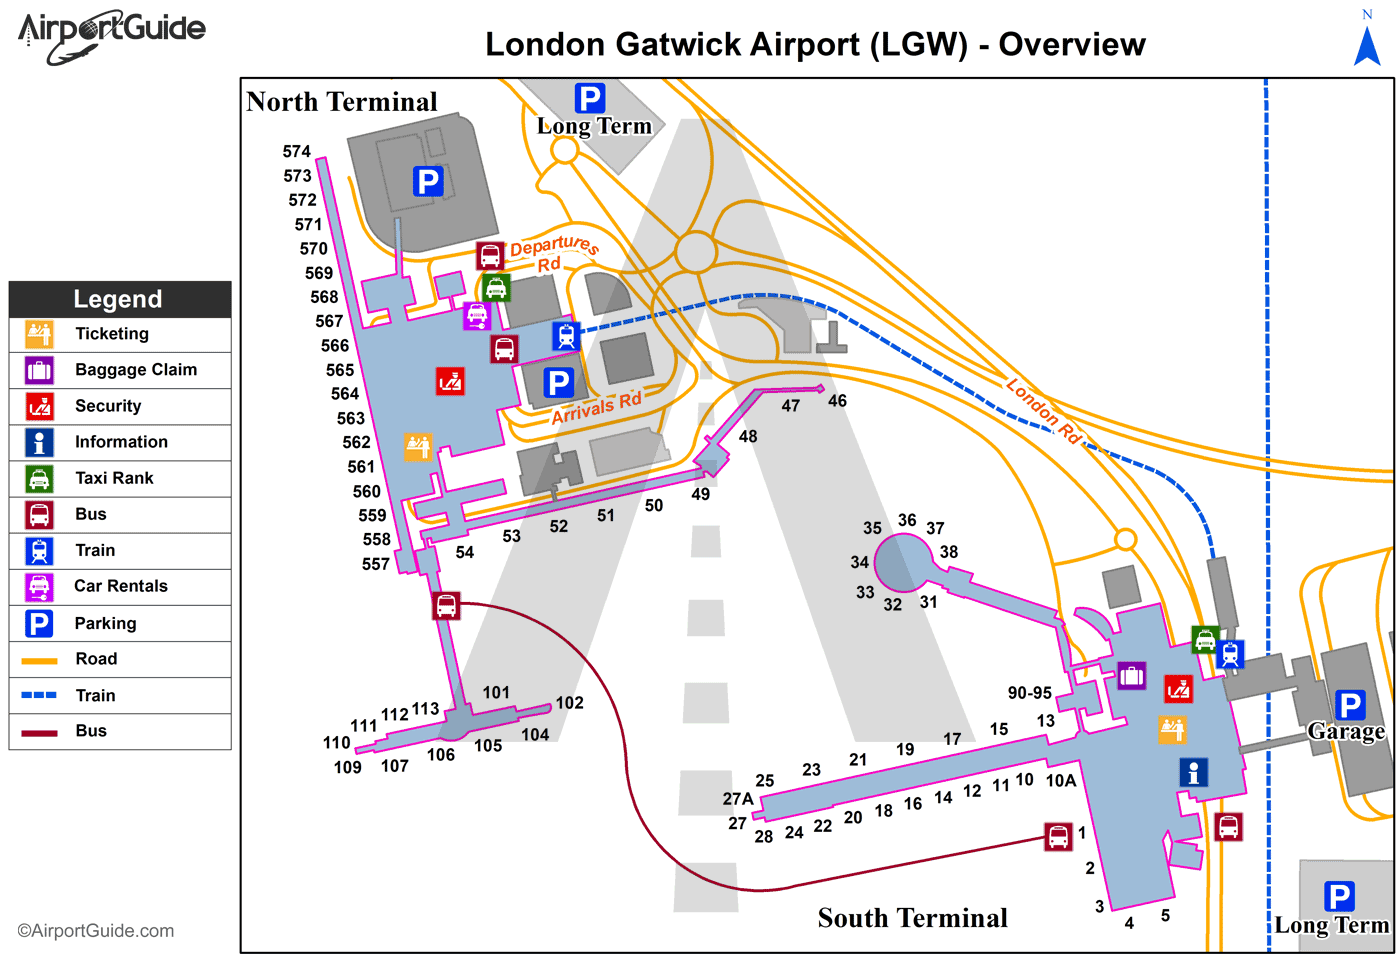 London - London Gatwick (LGW) Airport Terminal Map - Overview